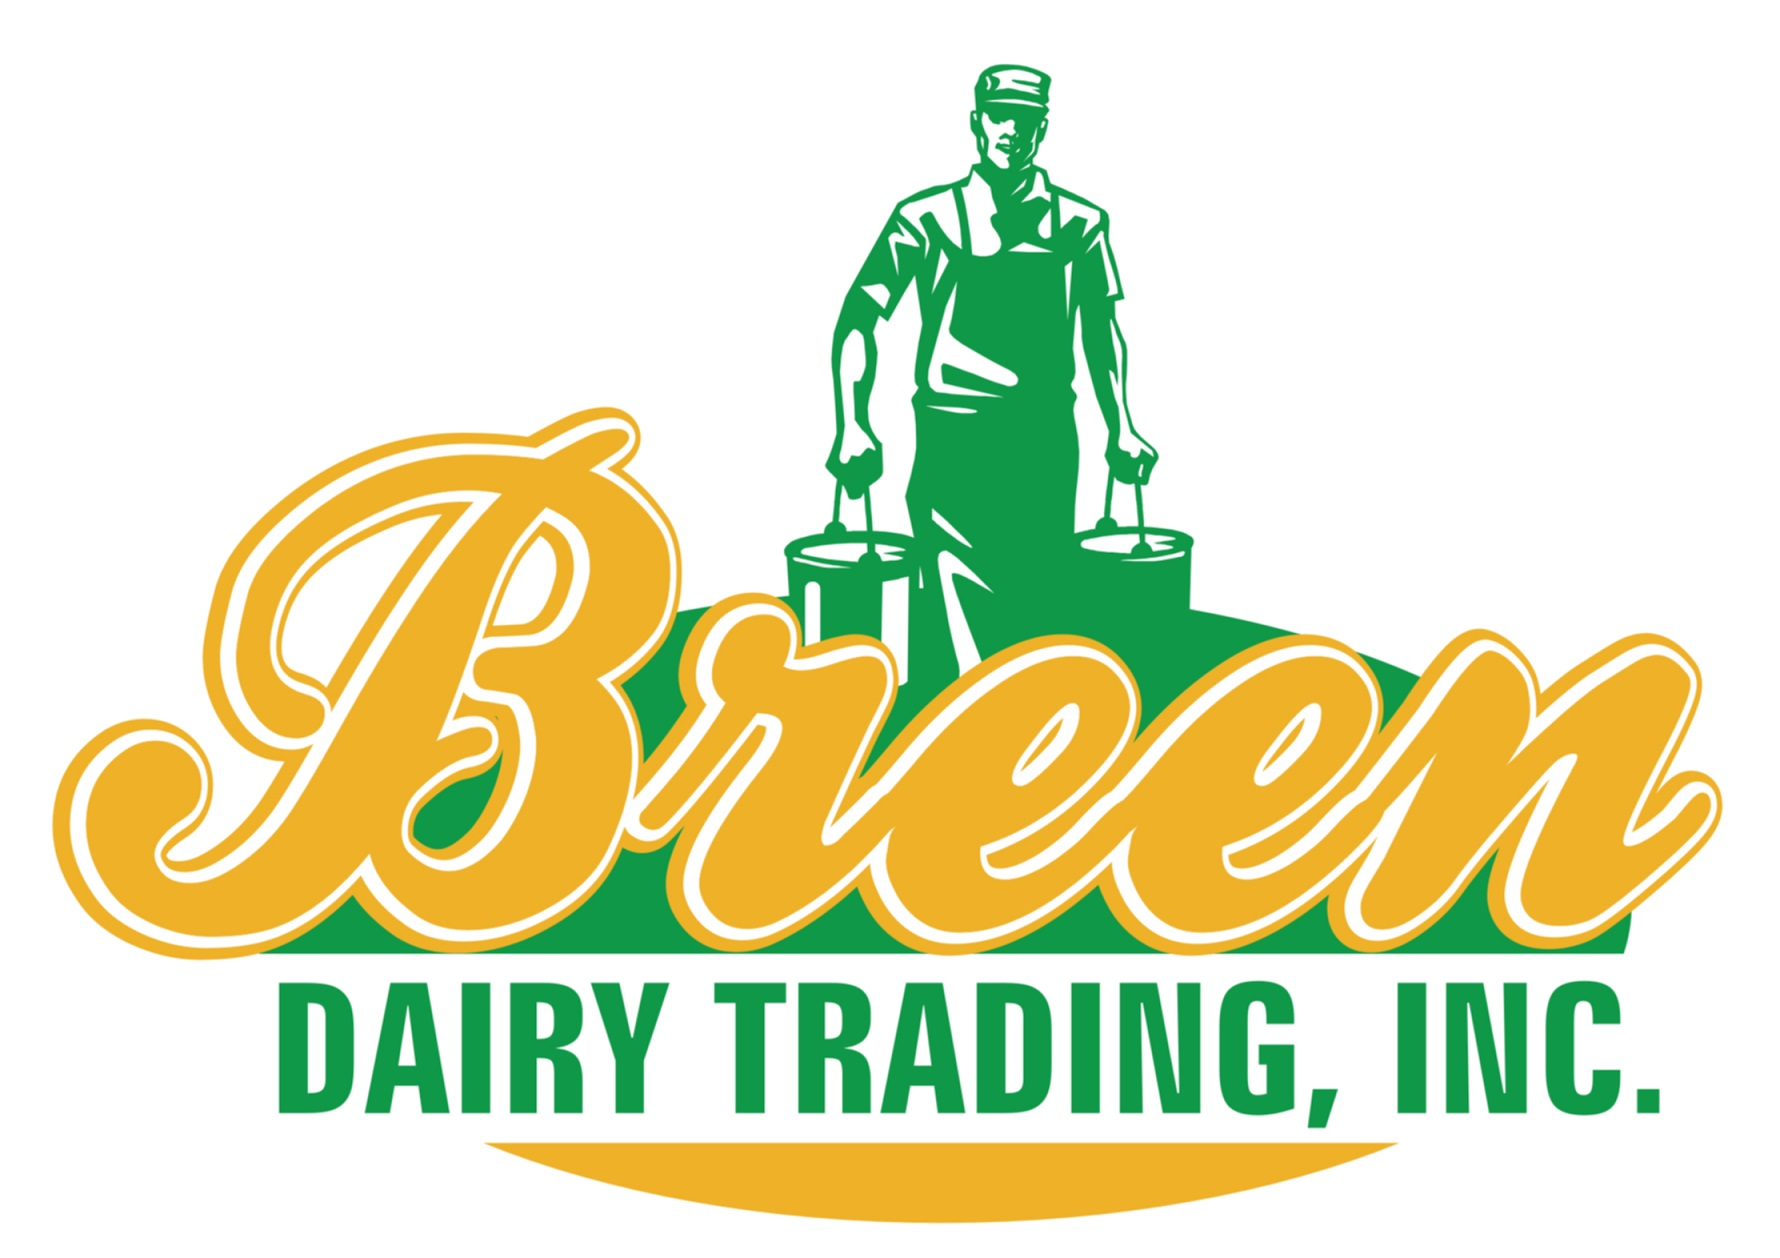 Breen Dairy Trading, Inc.